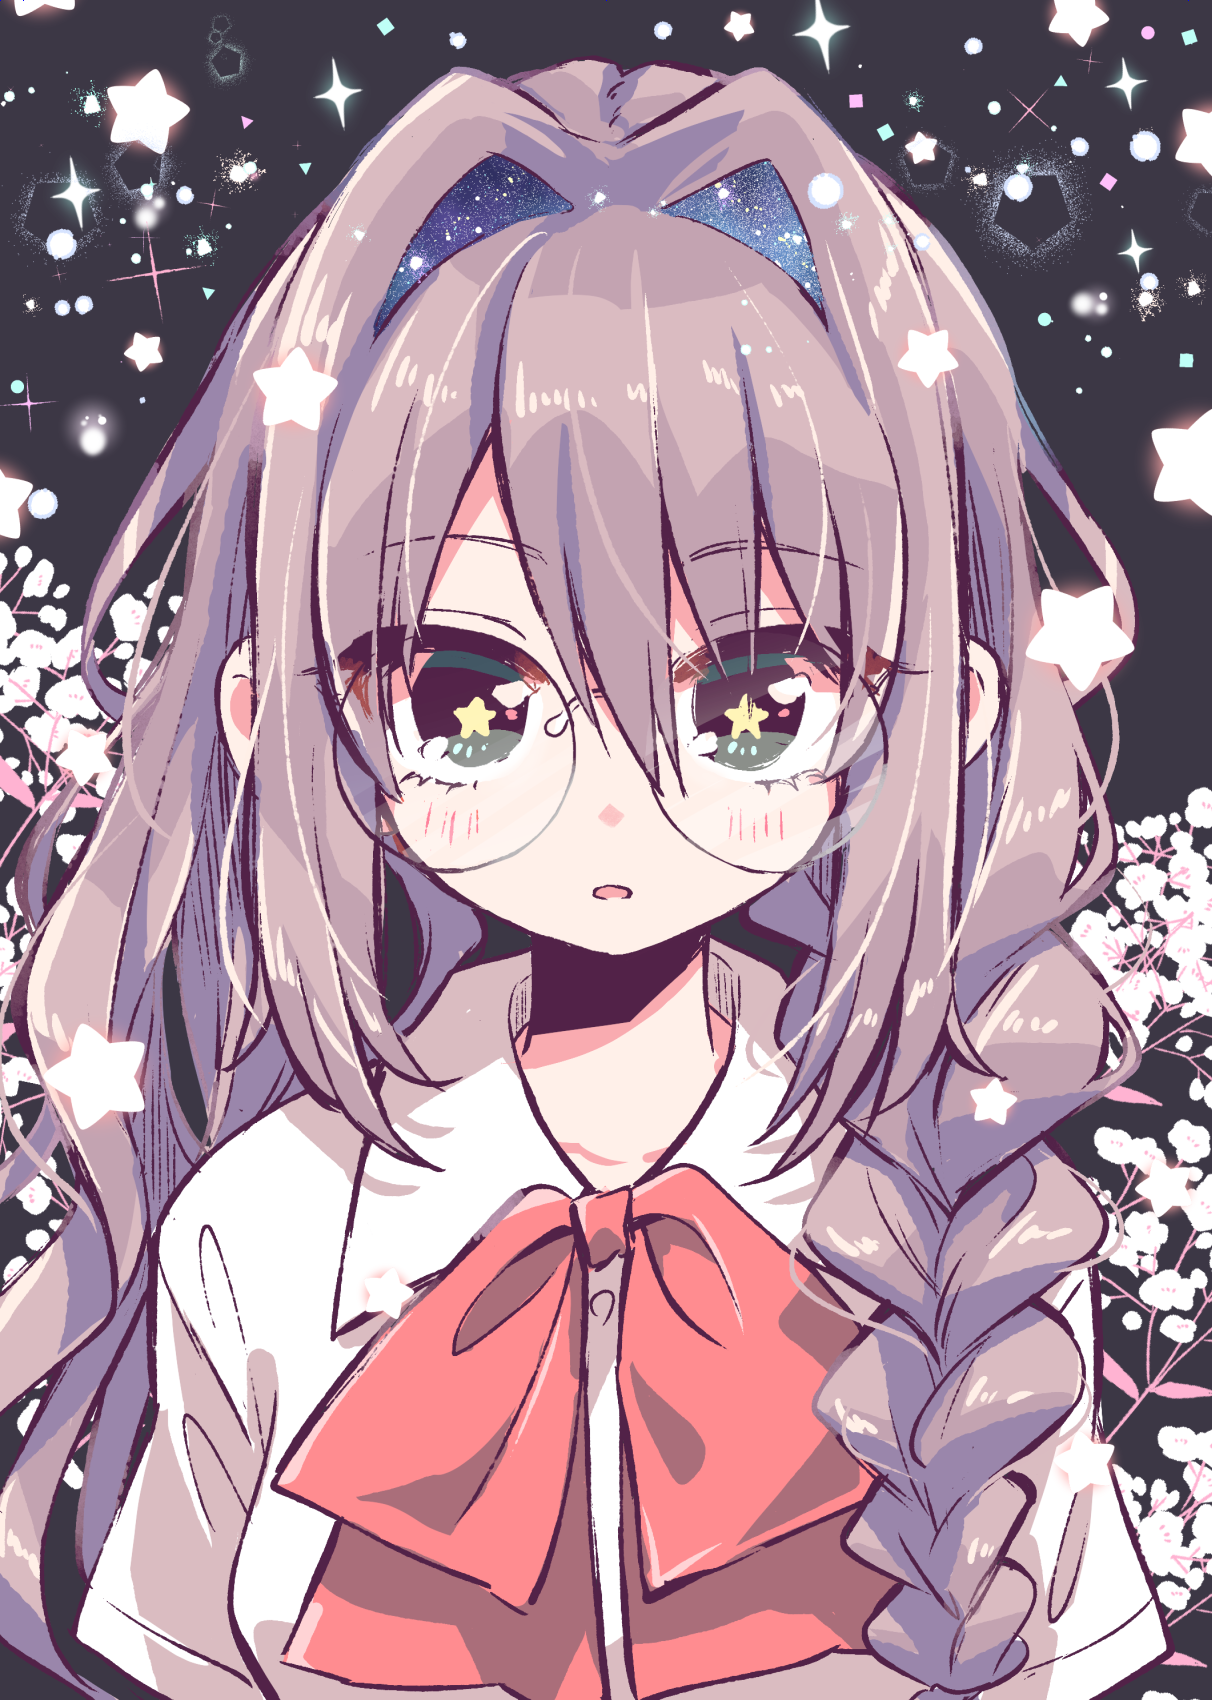 Cute Anime Girls Glasses Wallpapers - Wallpaper Cave